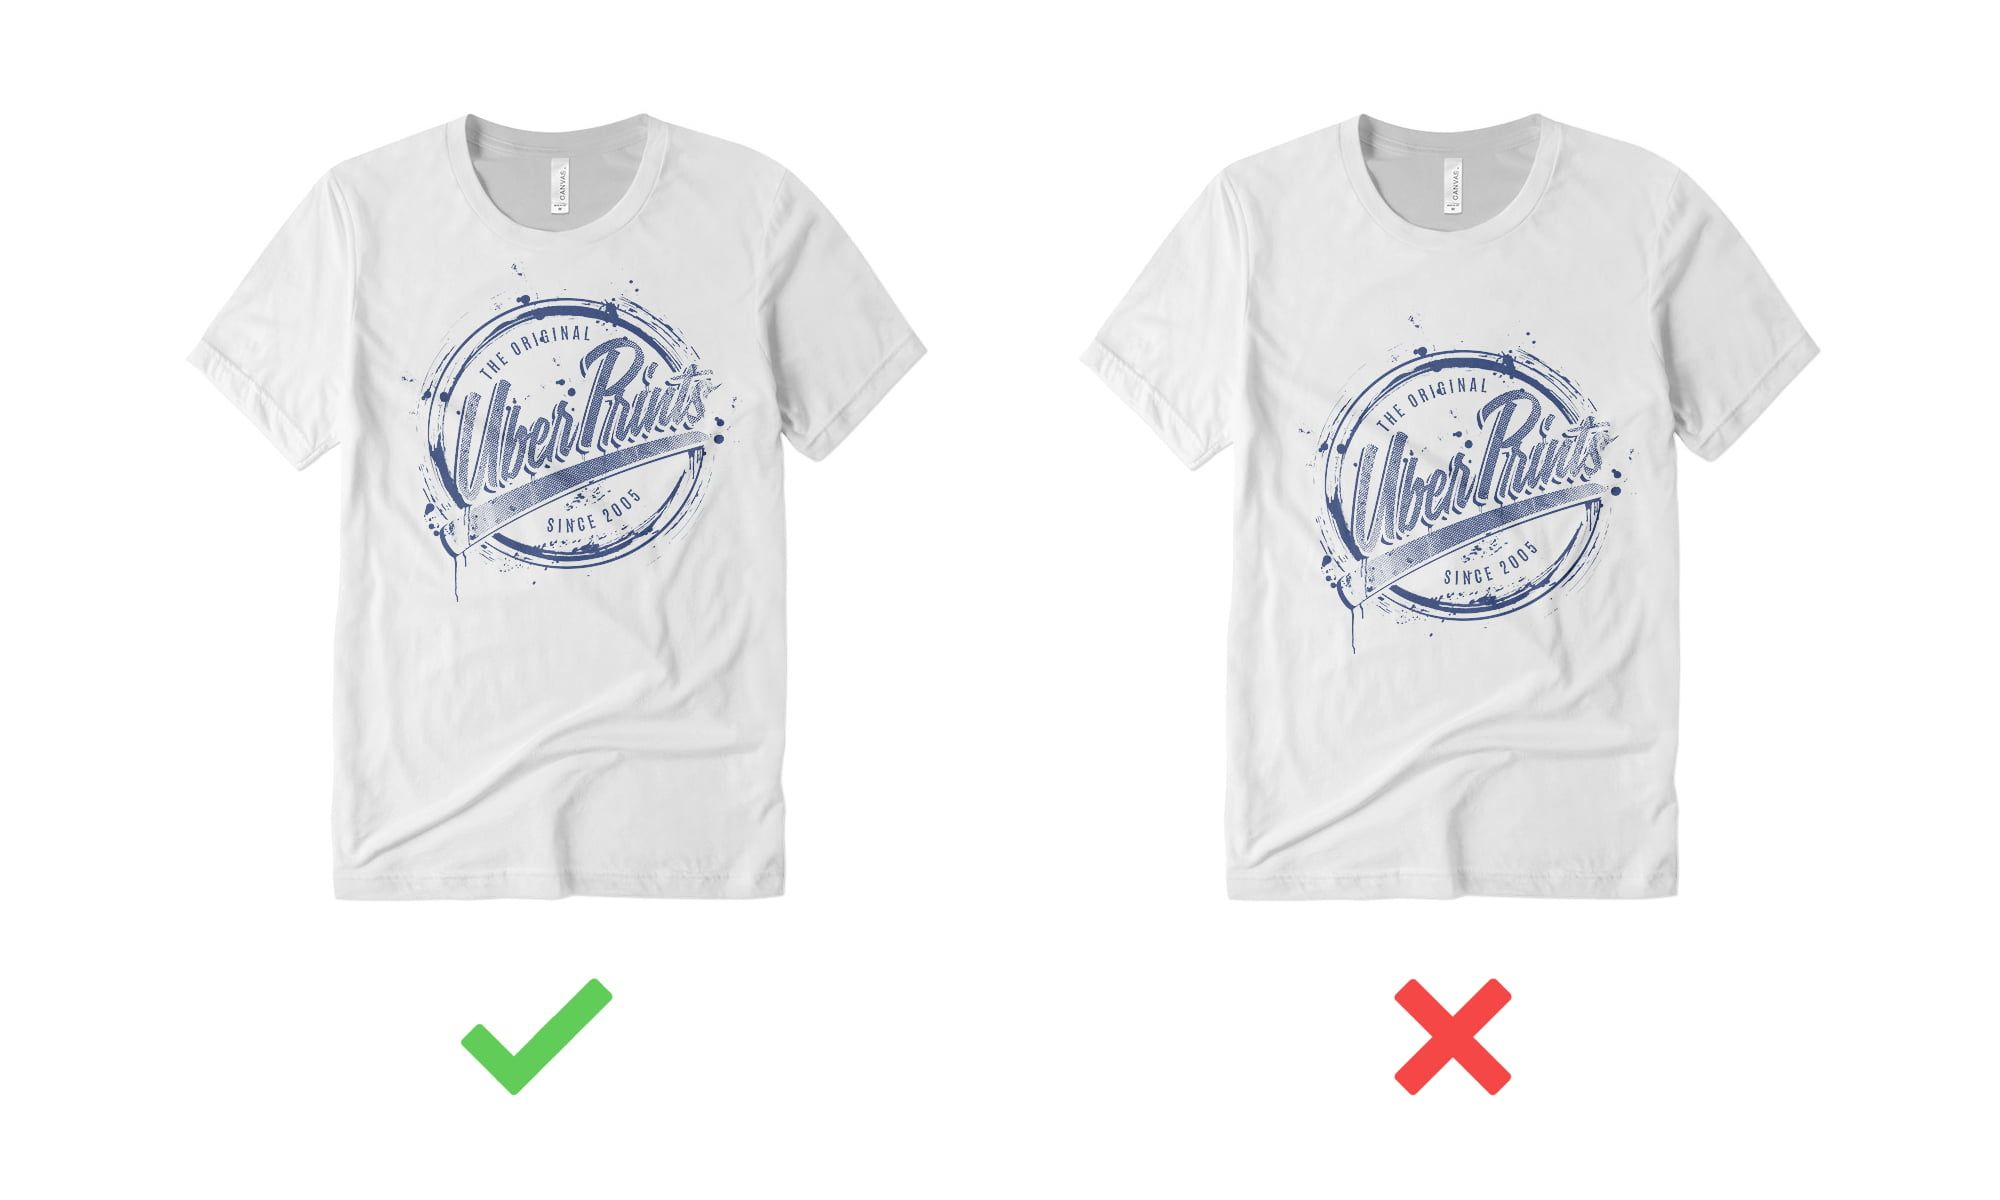 Example of t-shirt design placed too low.